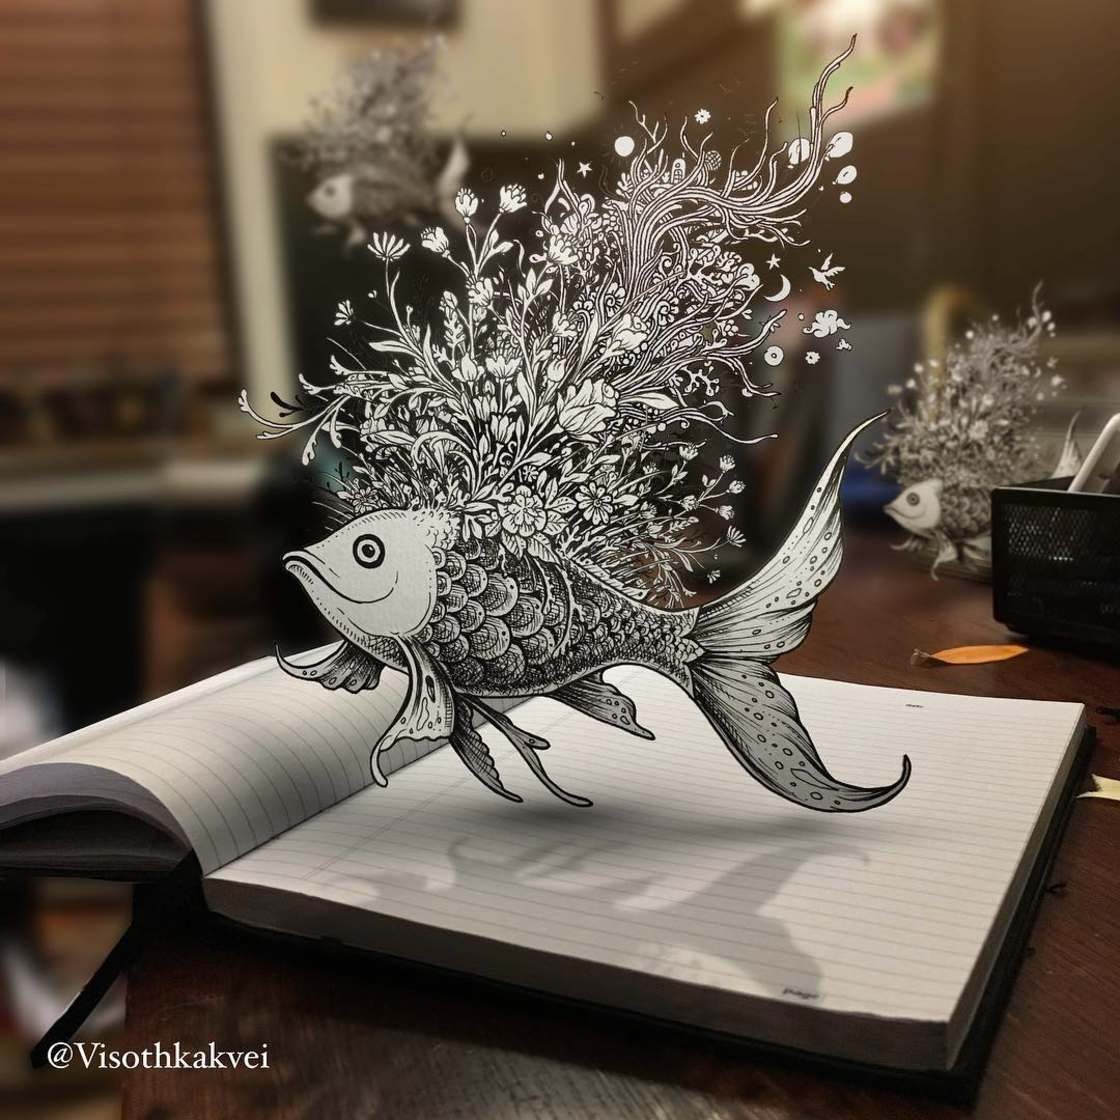 The beautiful augmented doodles by Visothkakvei